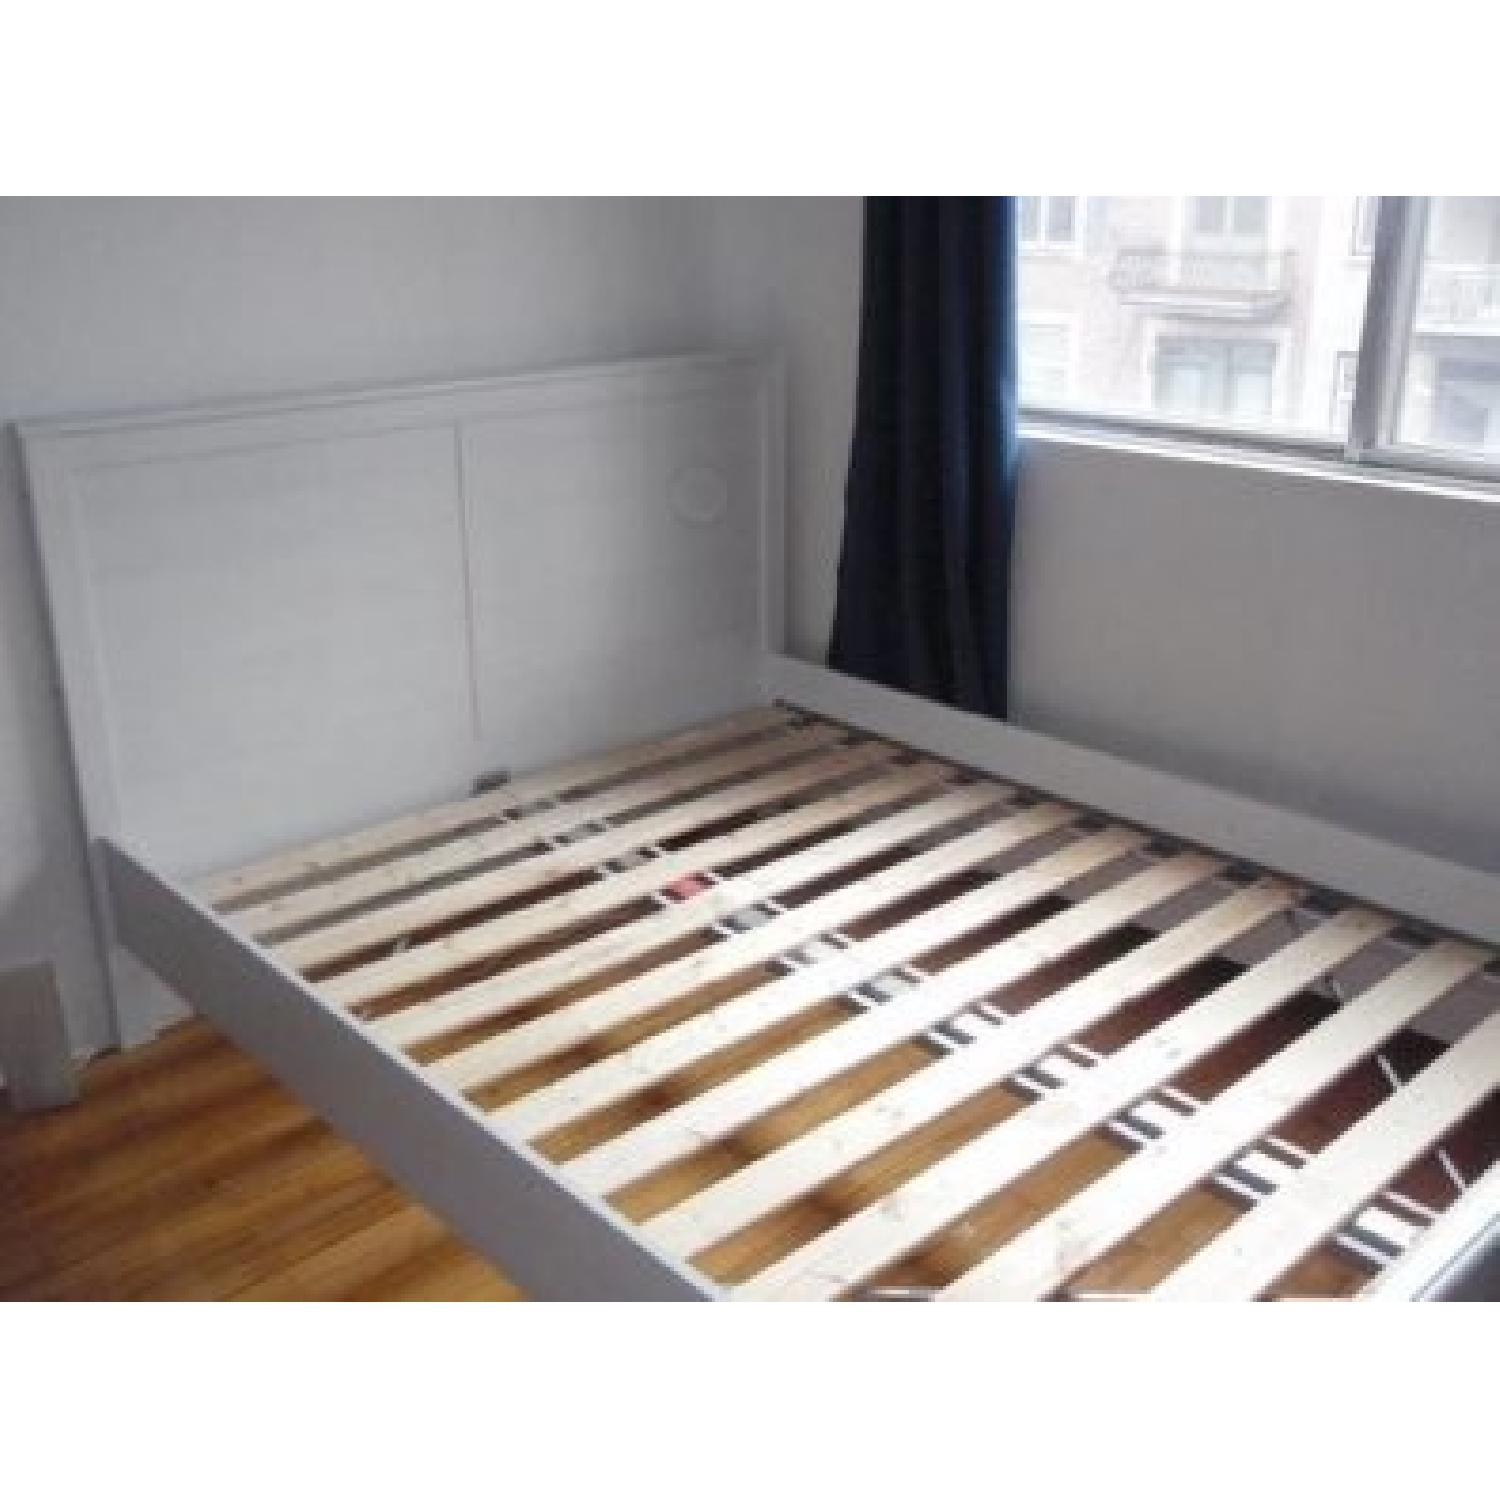 Ikea Aspelund Full Bed Frame